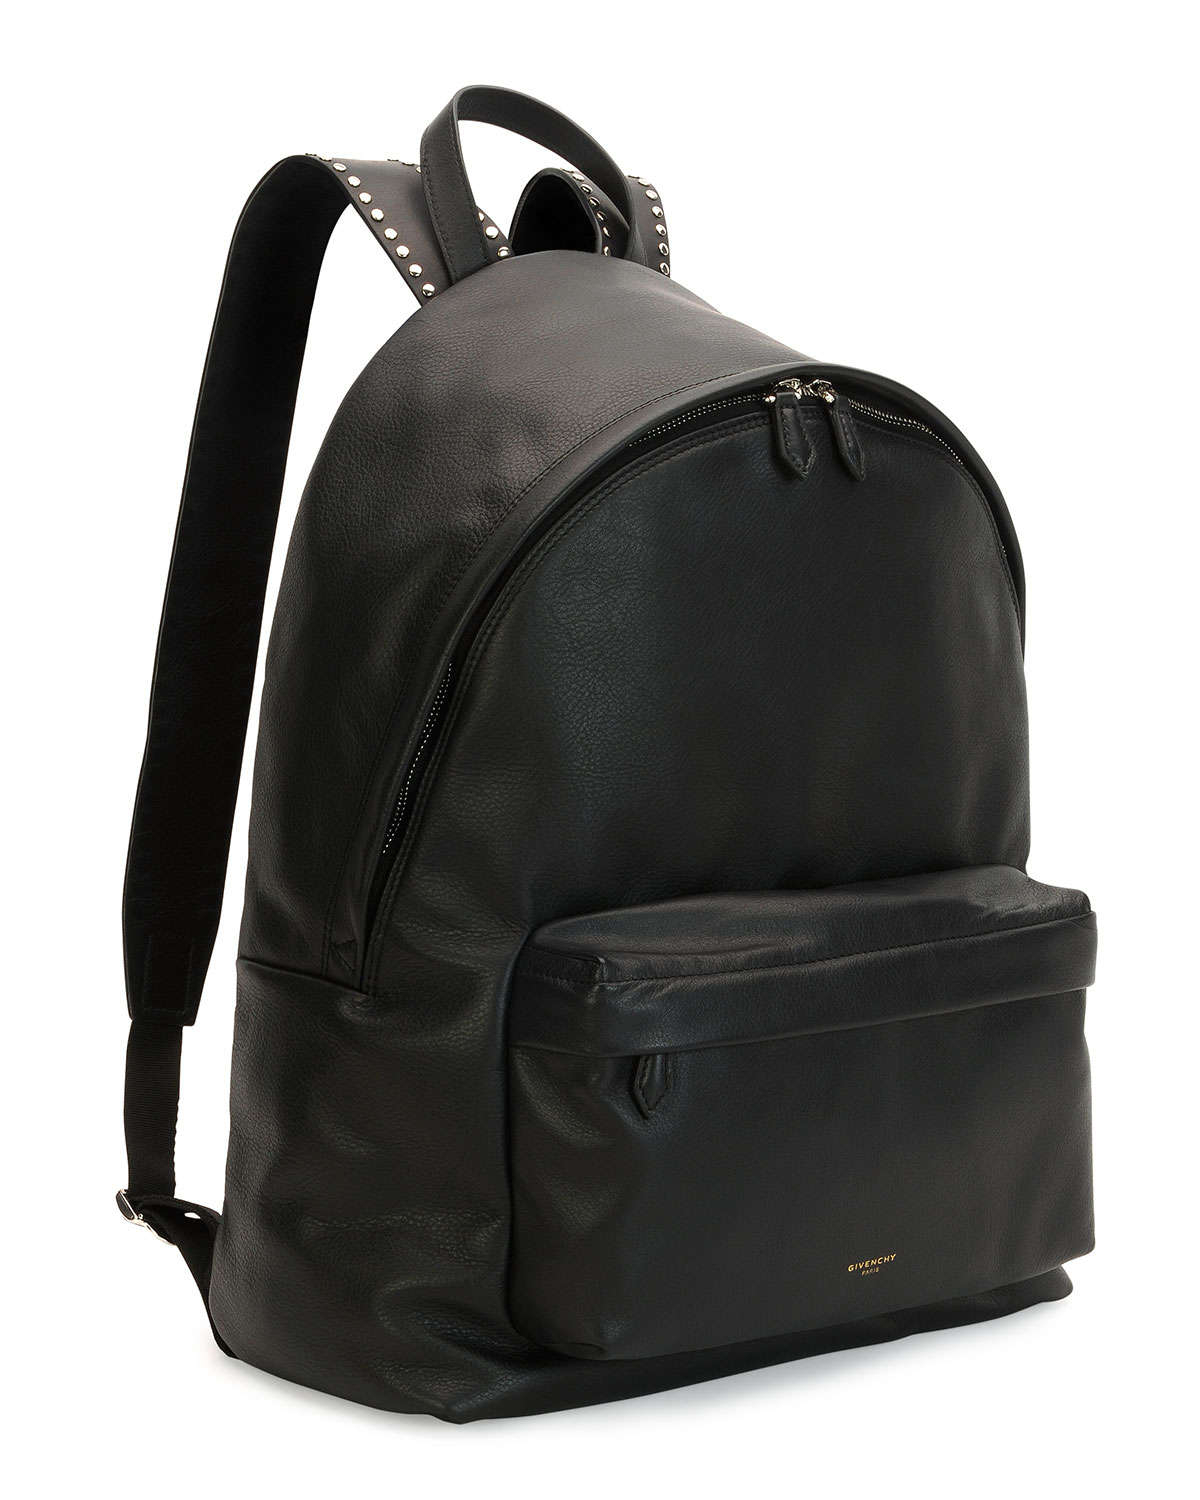 Lyst - Givenchy Studded Leather Backpack in Black for Men dce555a6cf